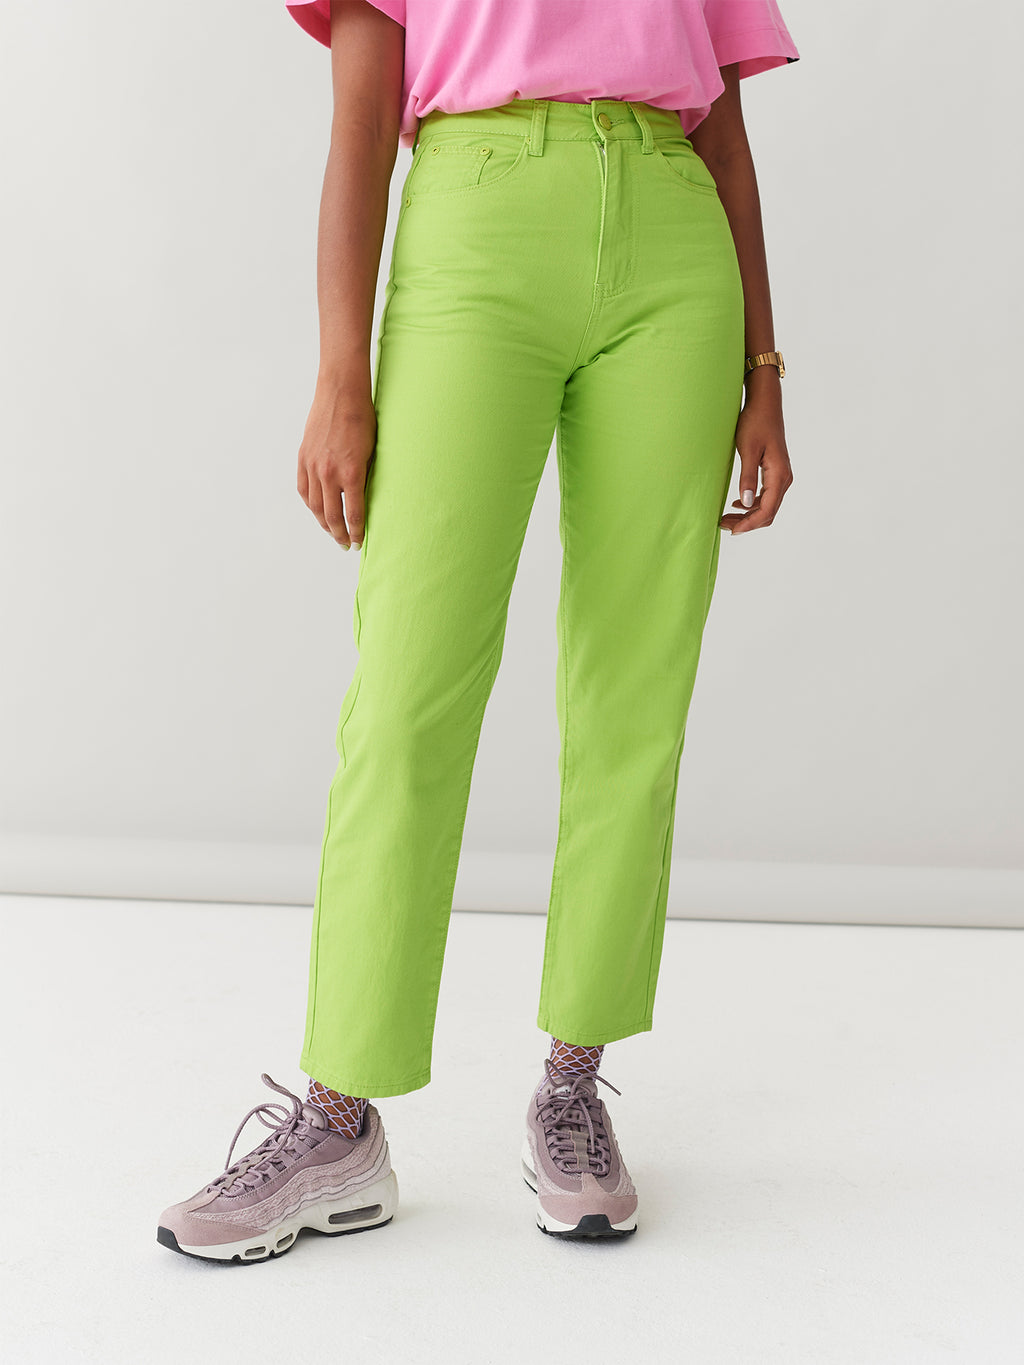 LO Lime Mom Jeans